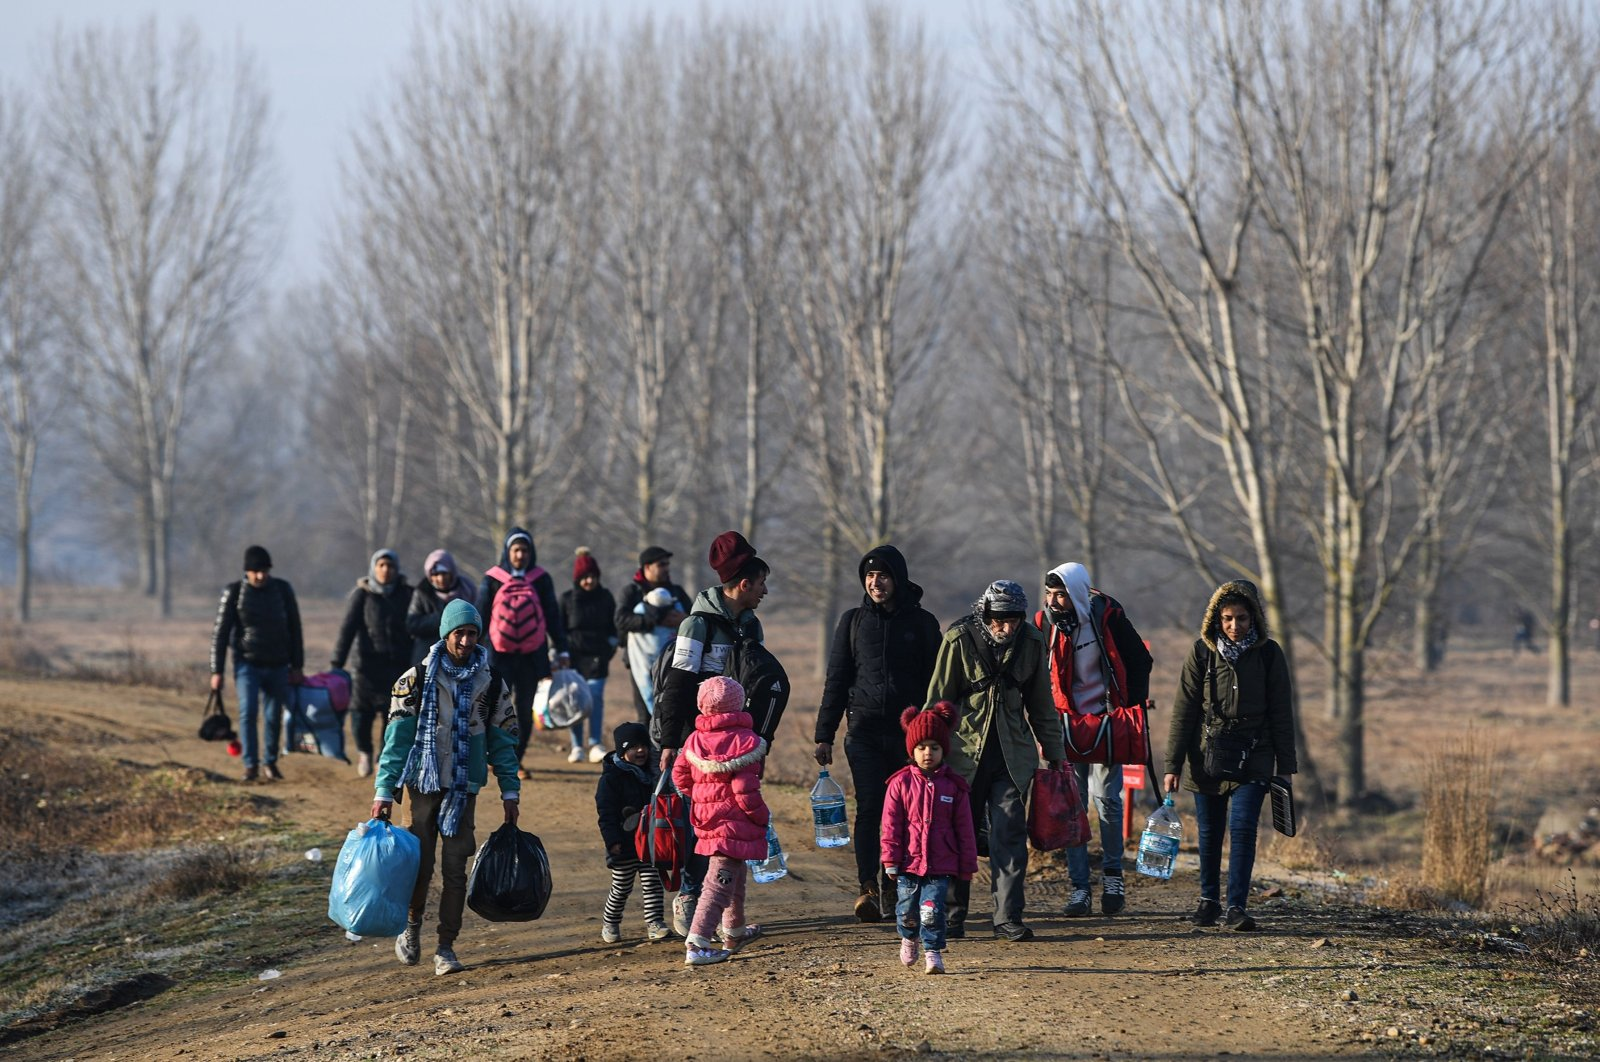 Migrants walk toward the Maritsa river, near Edirne, to take a boat to attempt to enter Greece by crossing the river on March 1, 2020. (AFP Photo)